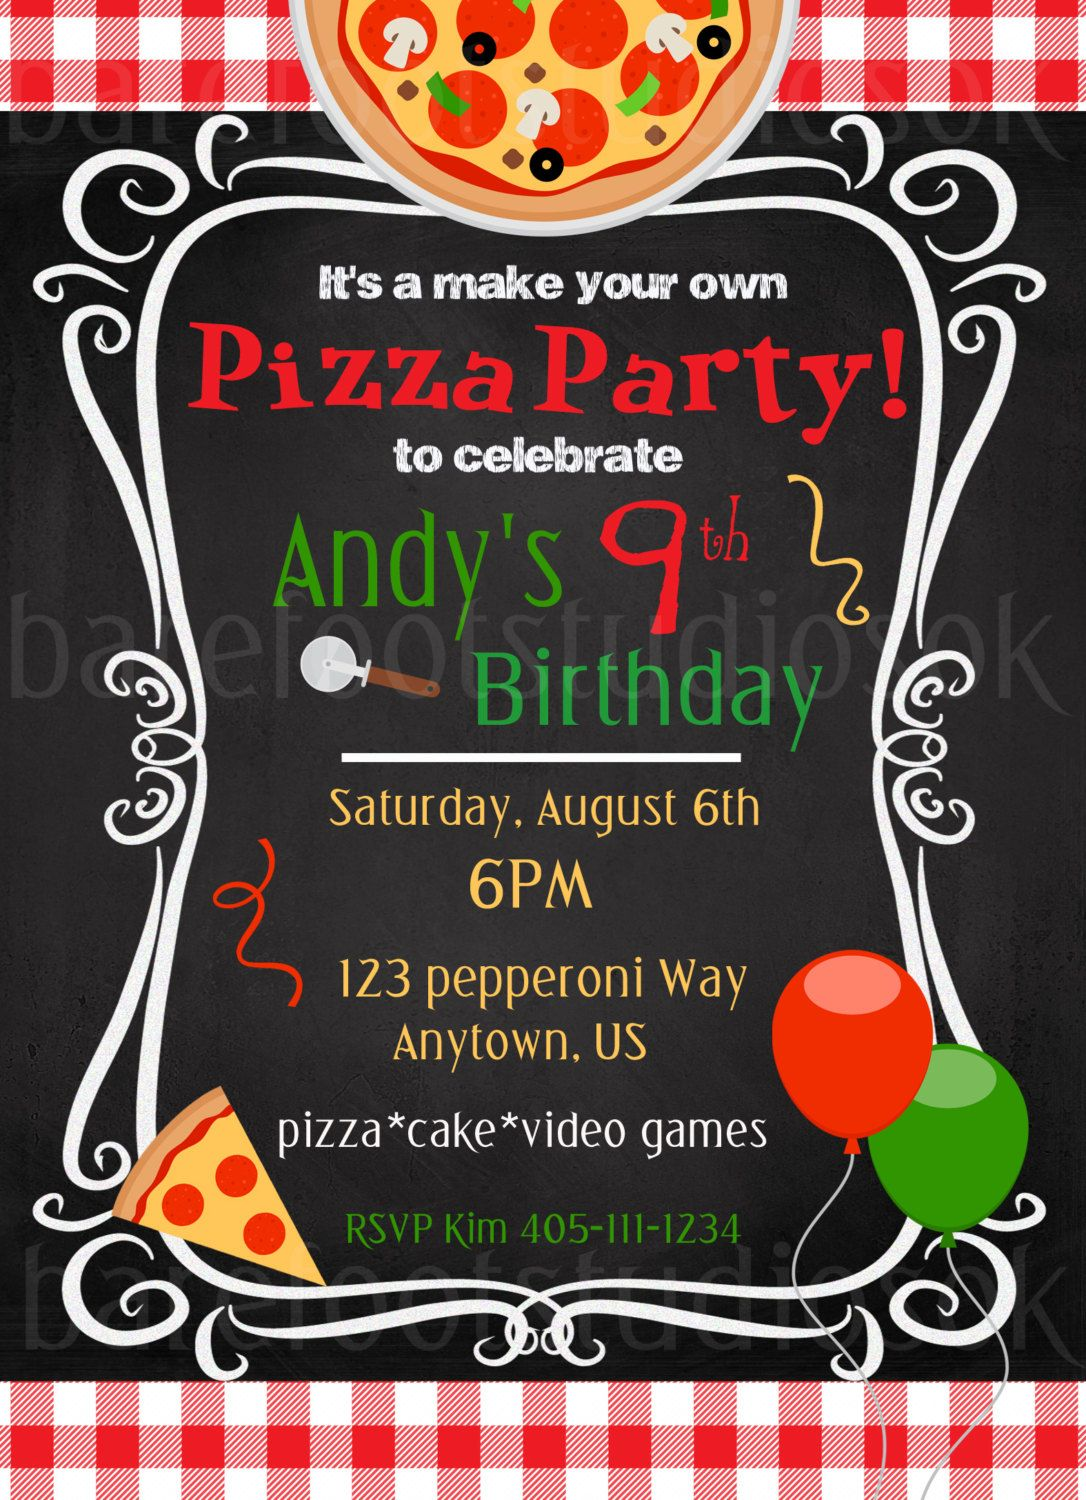 Pizza Party Invitation Pizza Party Printable Birthday Inviation – Make Your Own Pizza Party Invitations